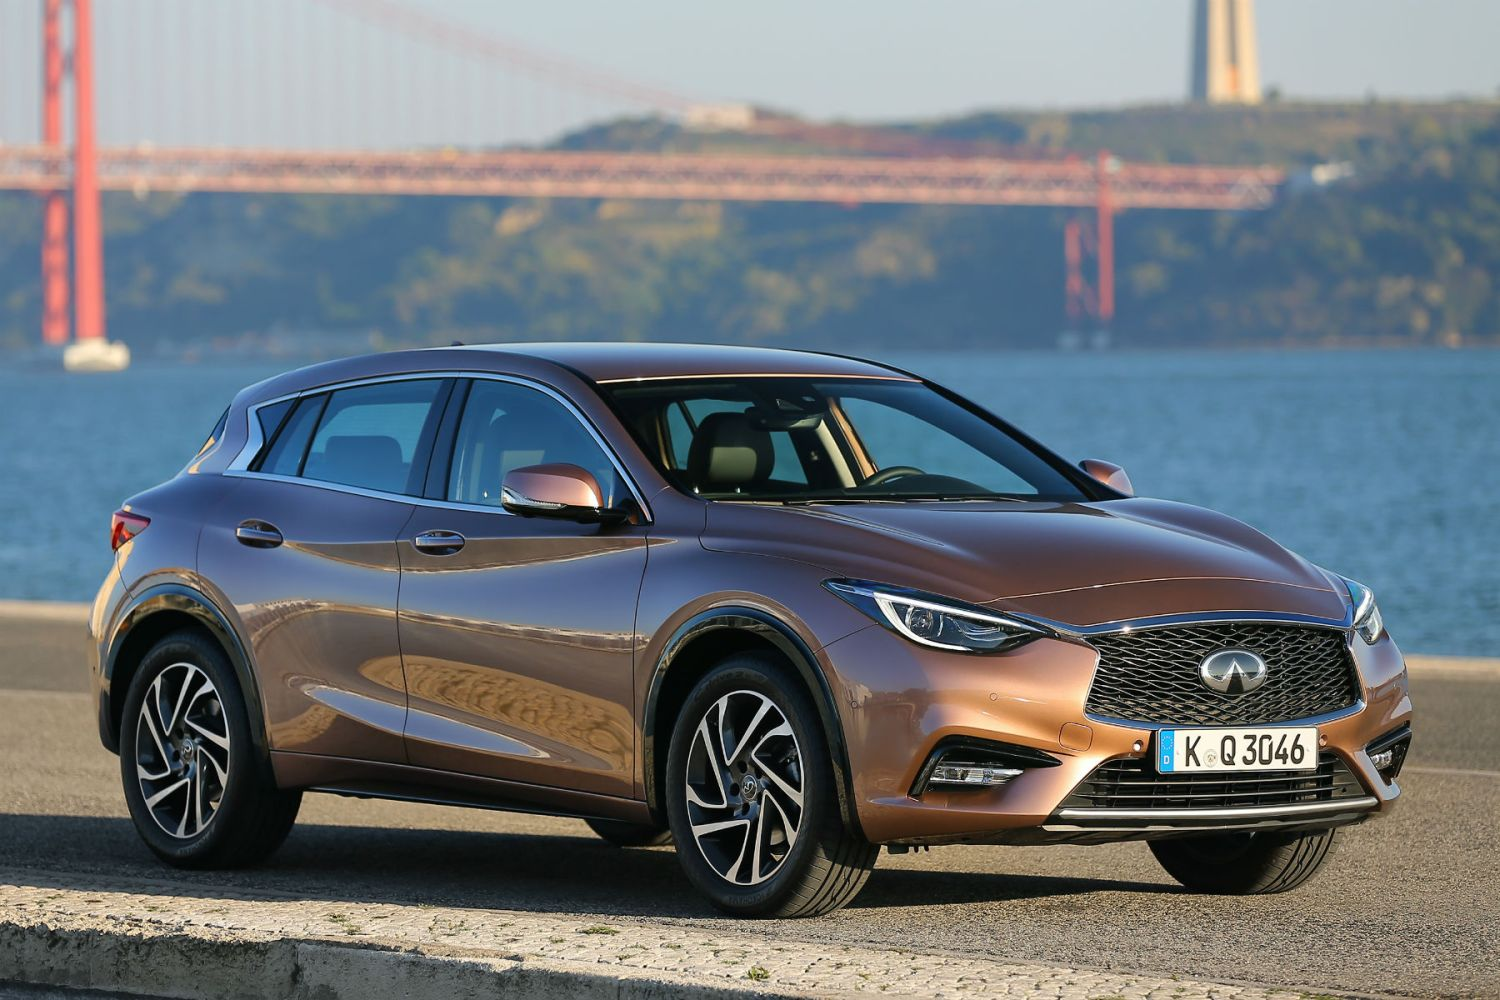 Infiniti Q30 review: Verdict